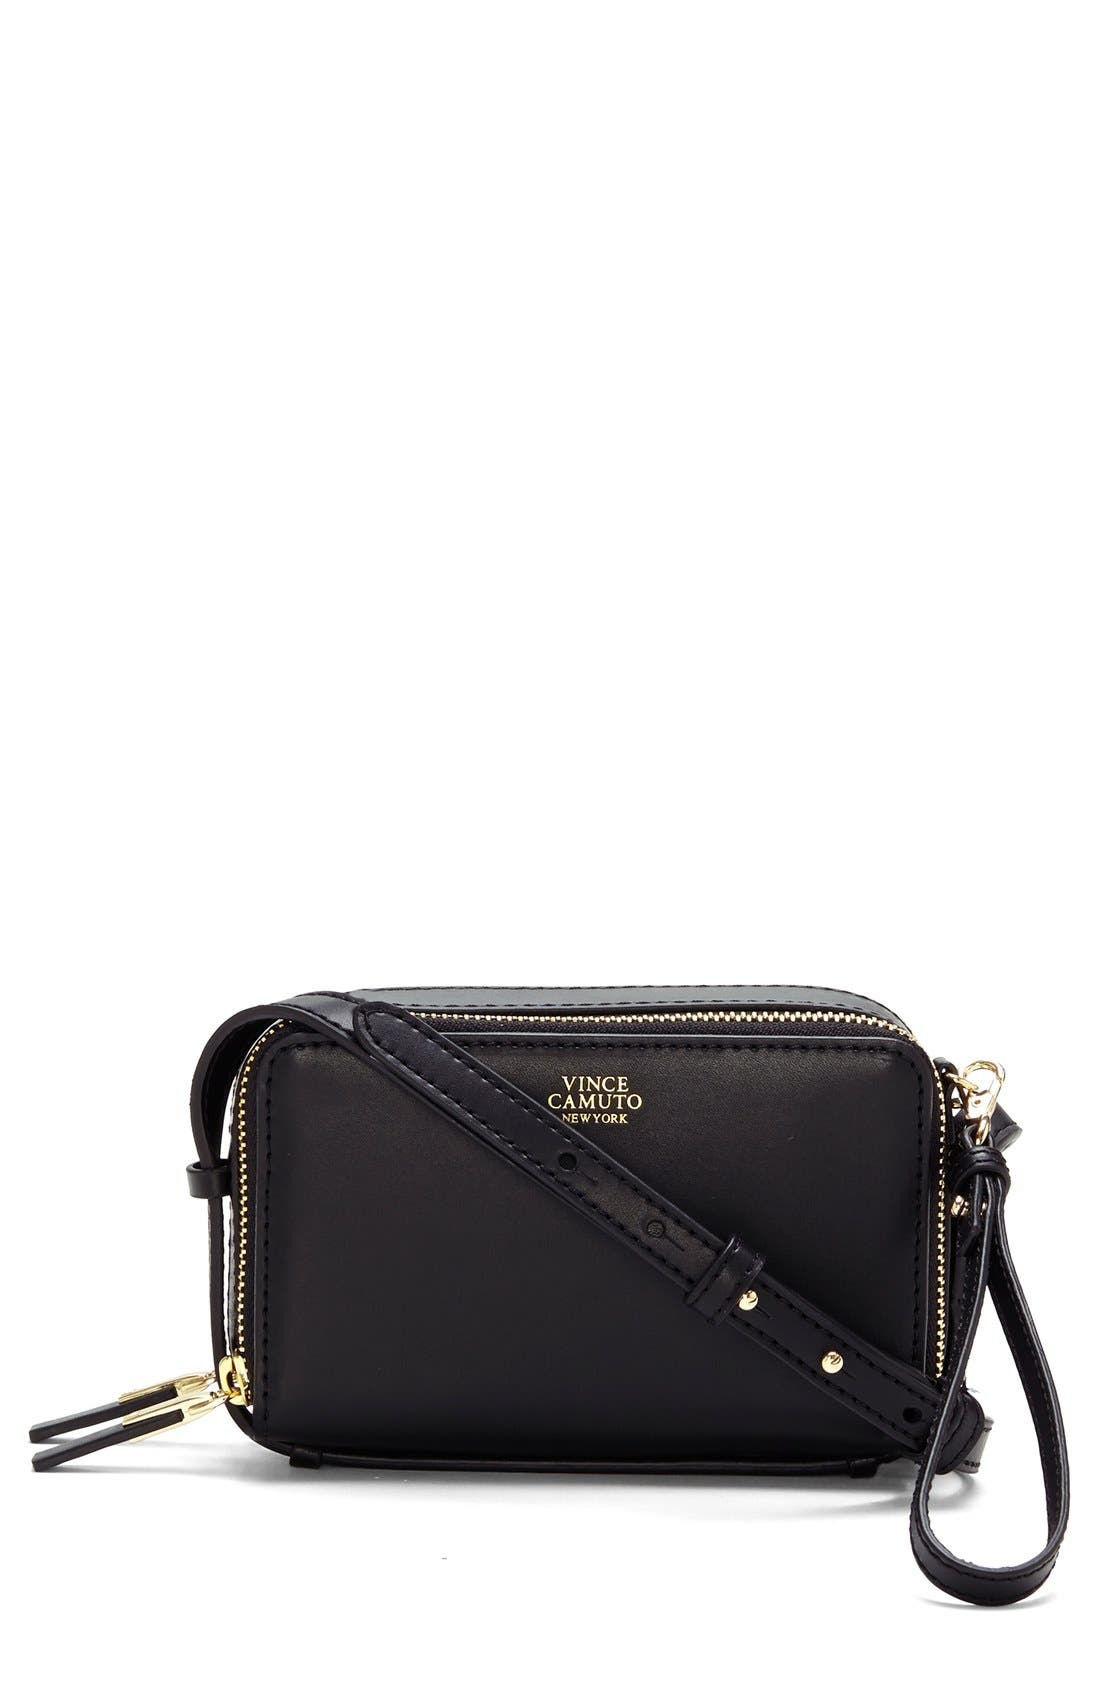 Main Image - Vince Camuto 'Brena - Small' Leather Crossbody Bag